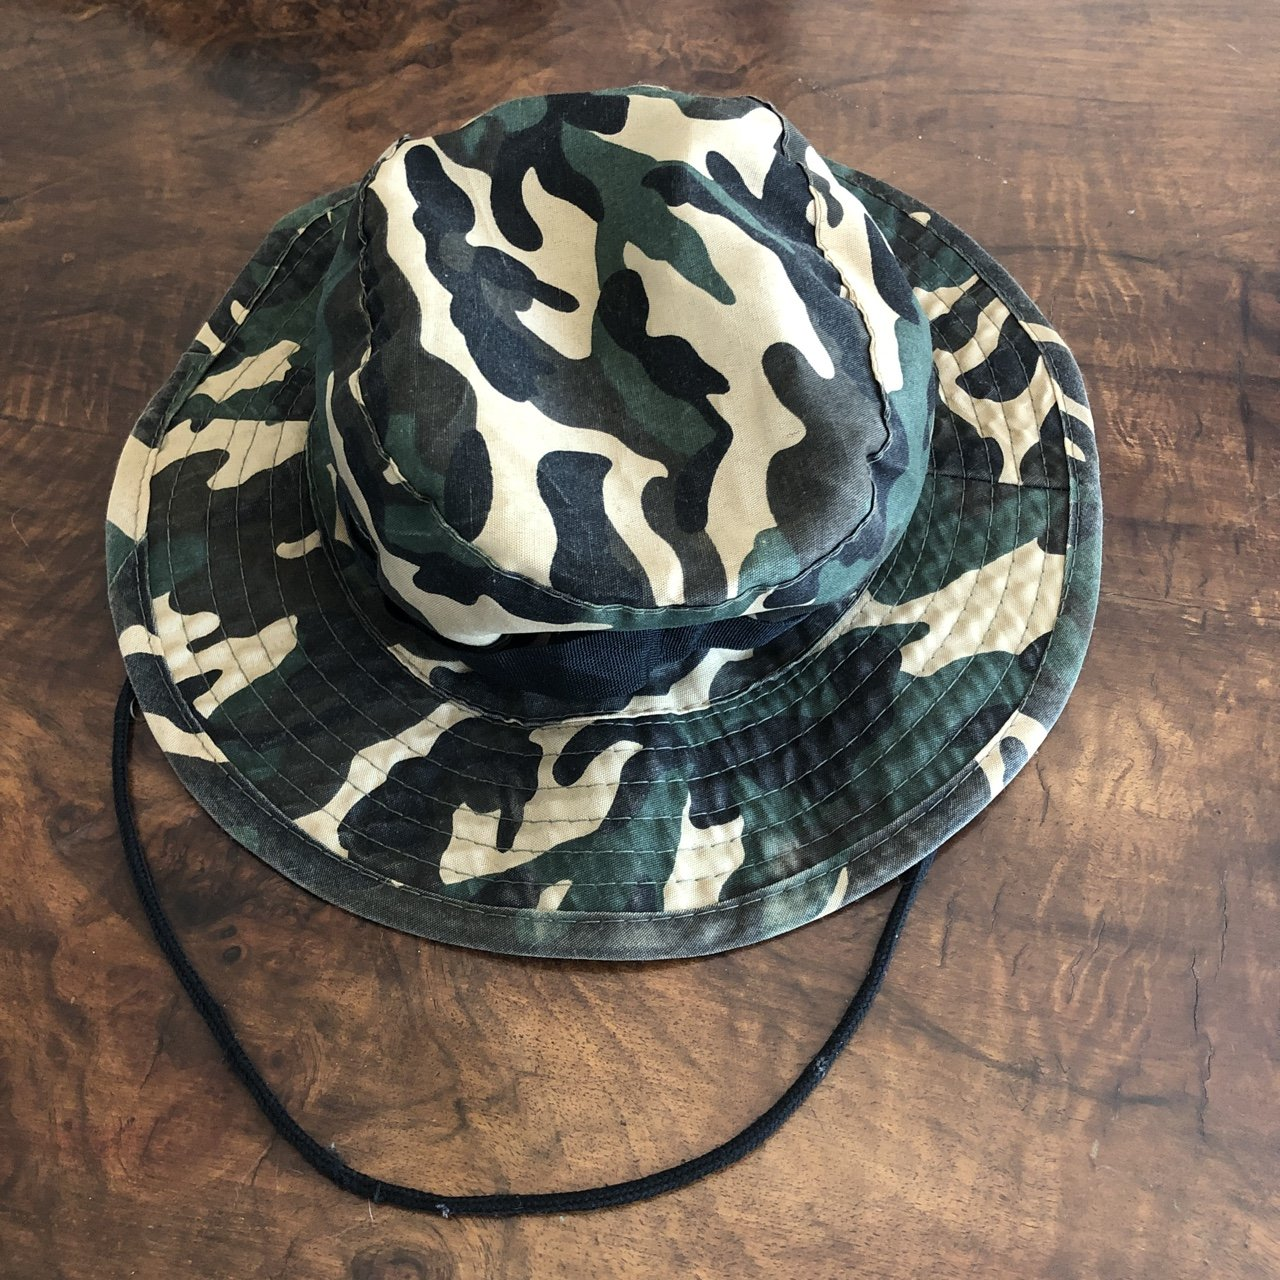 CAMO BUCKET HAT WITH DRAWSTRING US BUYERS ONLY SHIPS OUT - Depop ff0882dd060